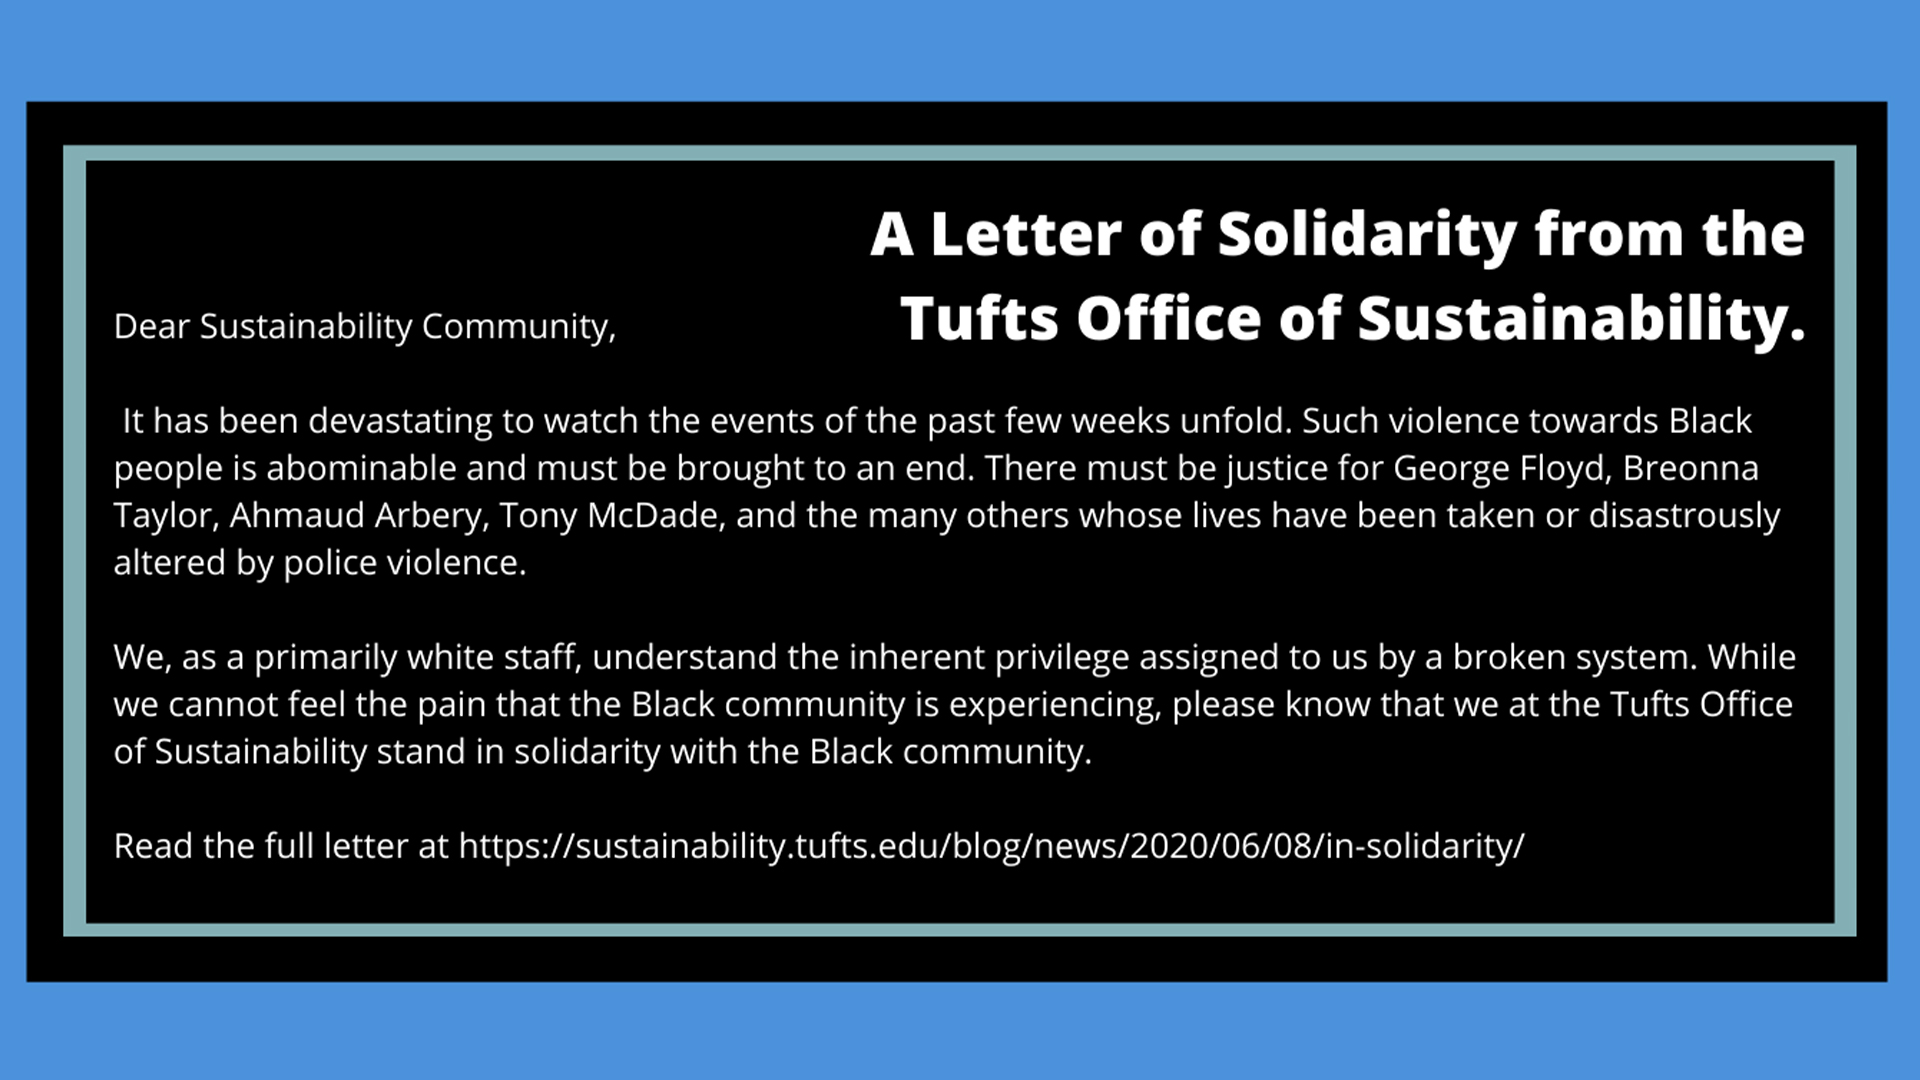 Solidarity Letter from the Tufts Office of Sustainability